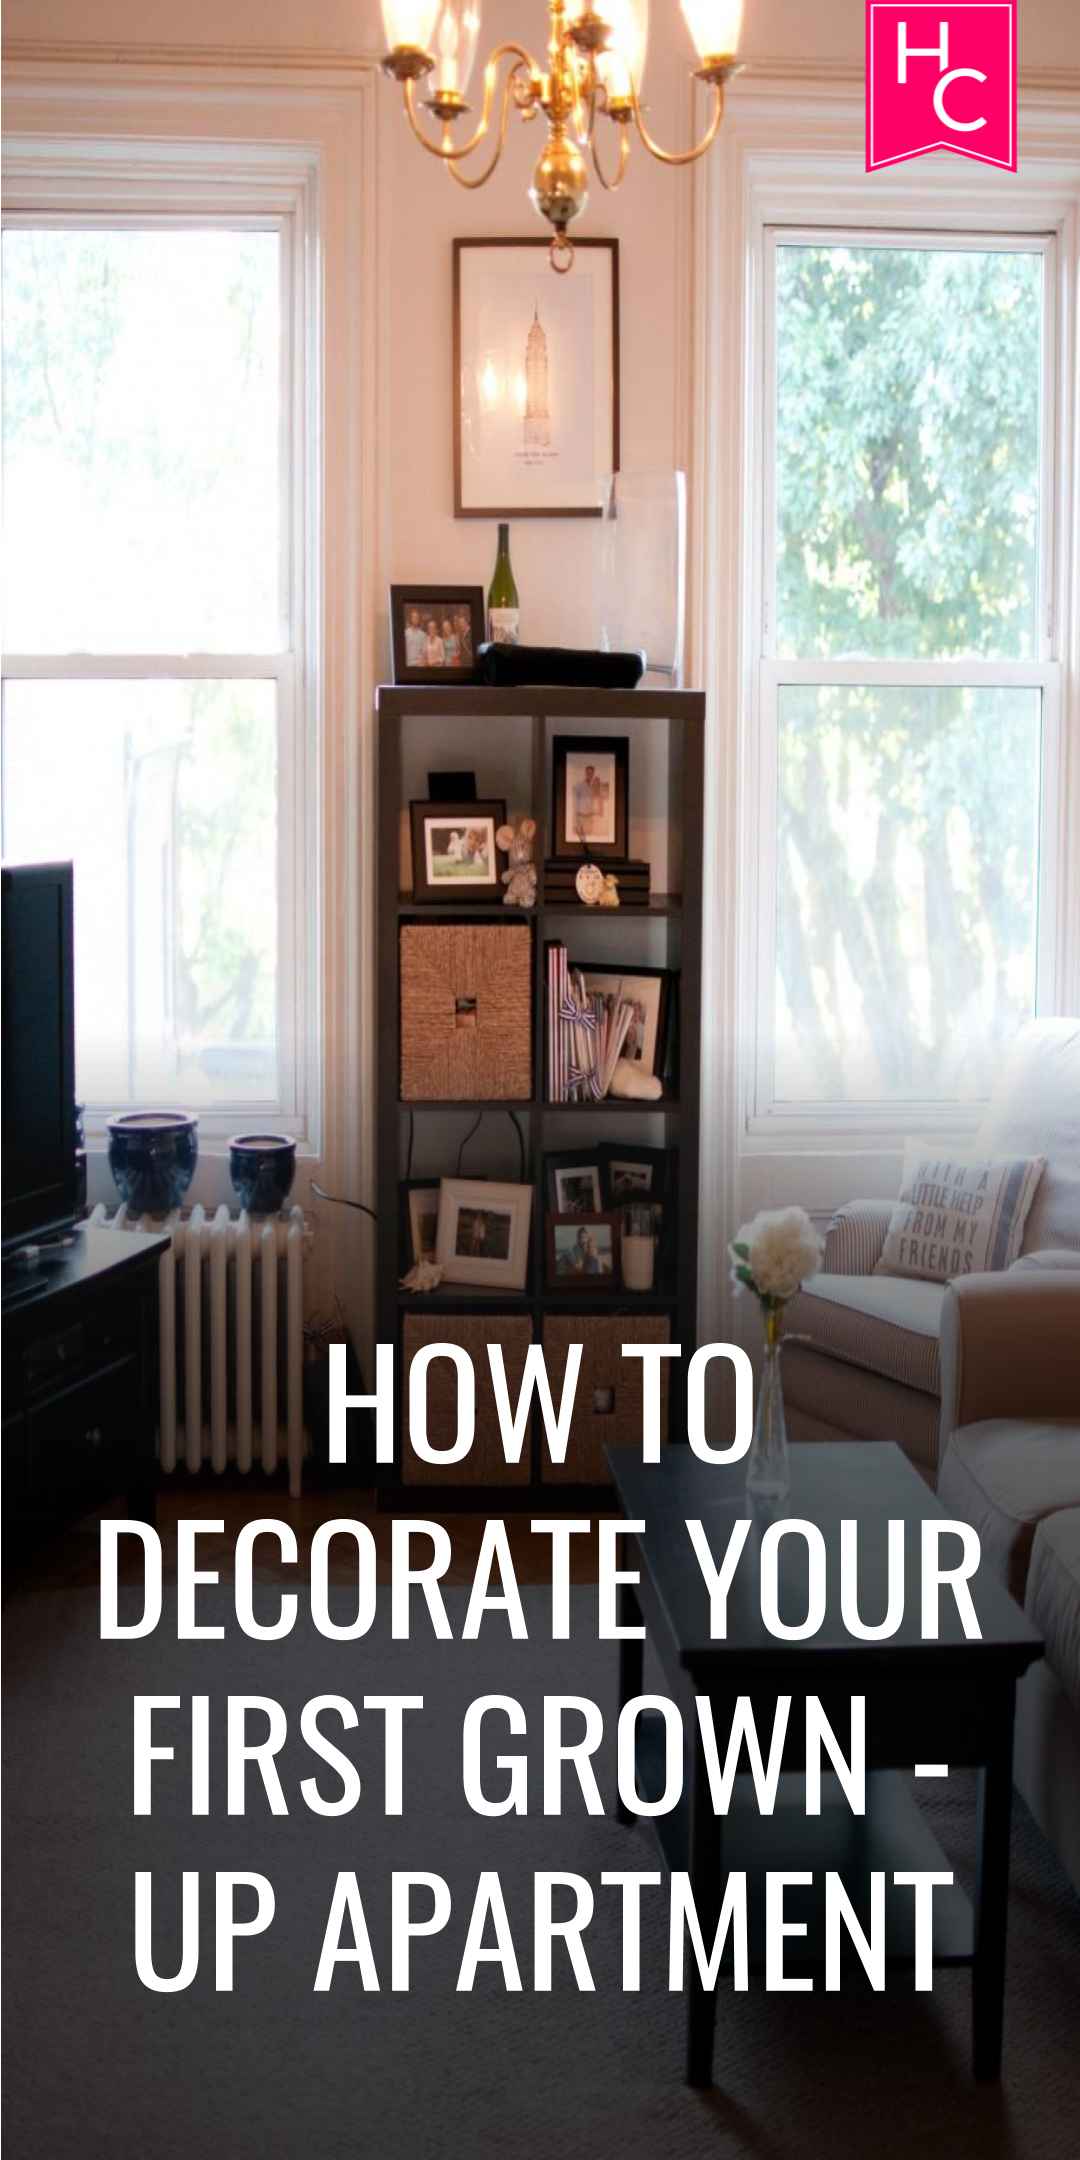 Decorate Your First Grown Up Apartment